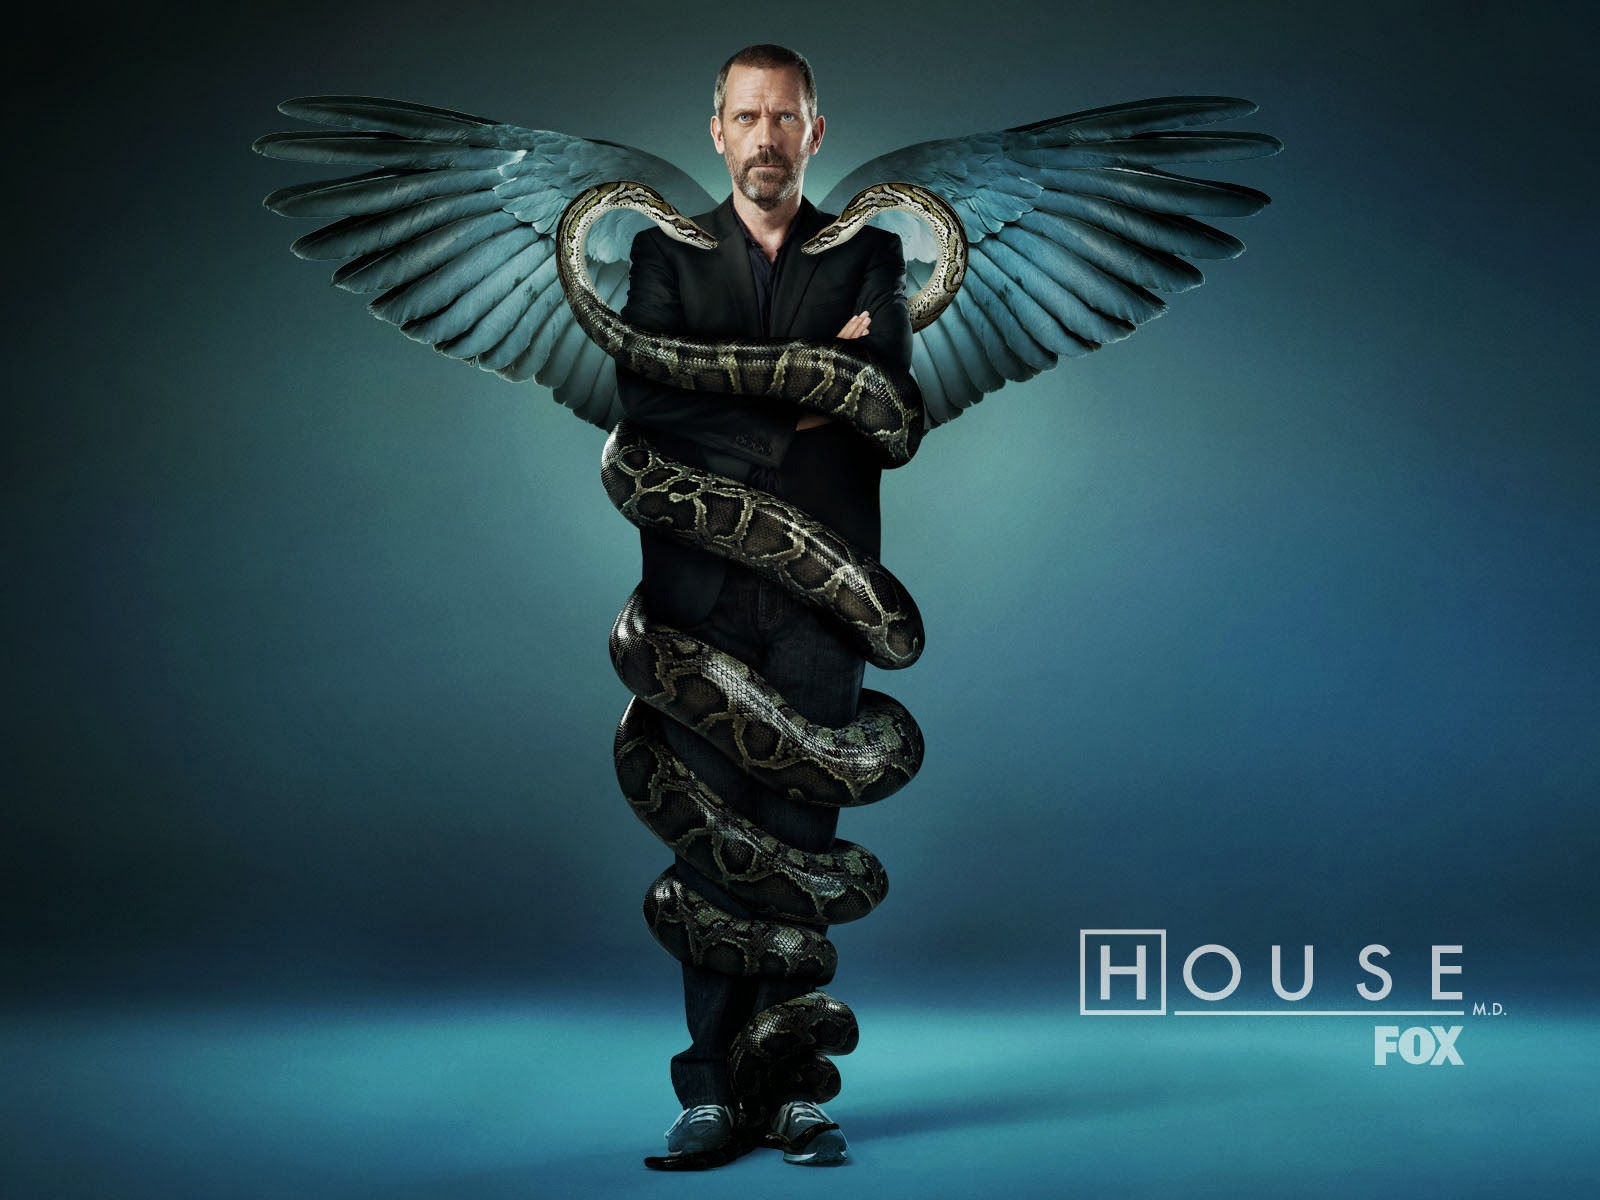 Iphone 6 Wallpaper Fall Wallpapers Hd 32 Wallpapers Hd De Doctor House Varias